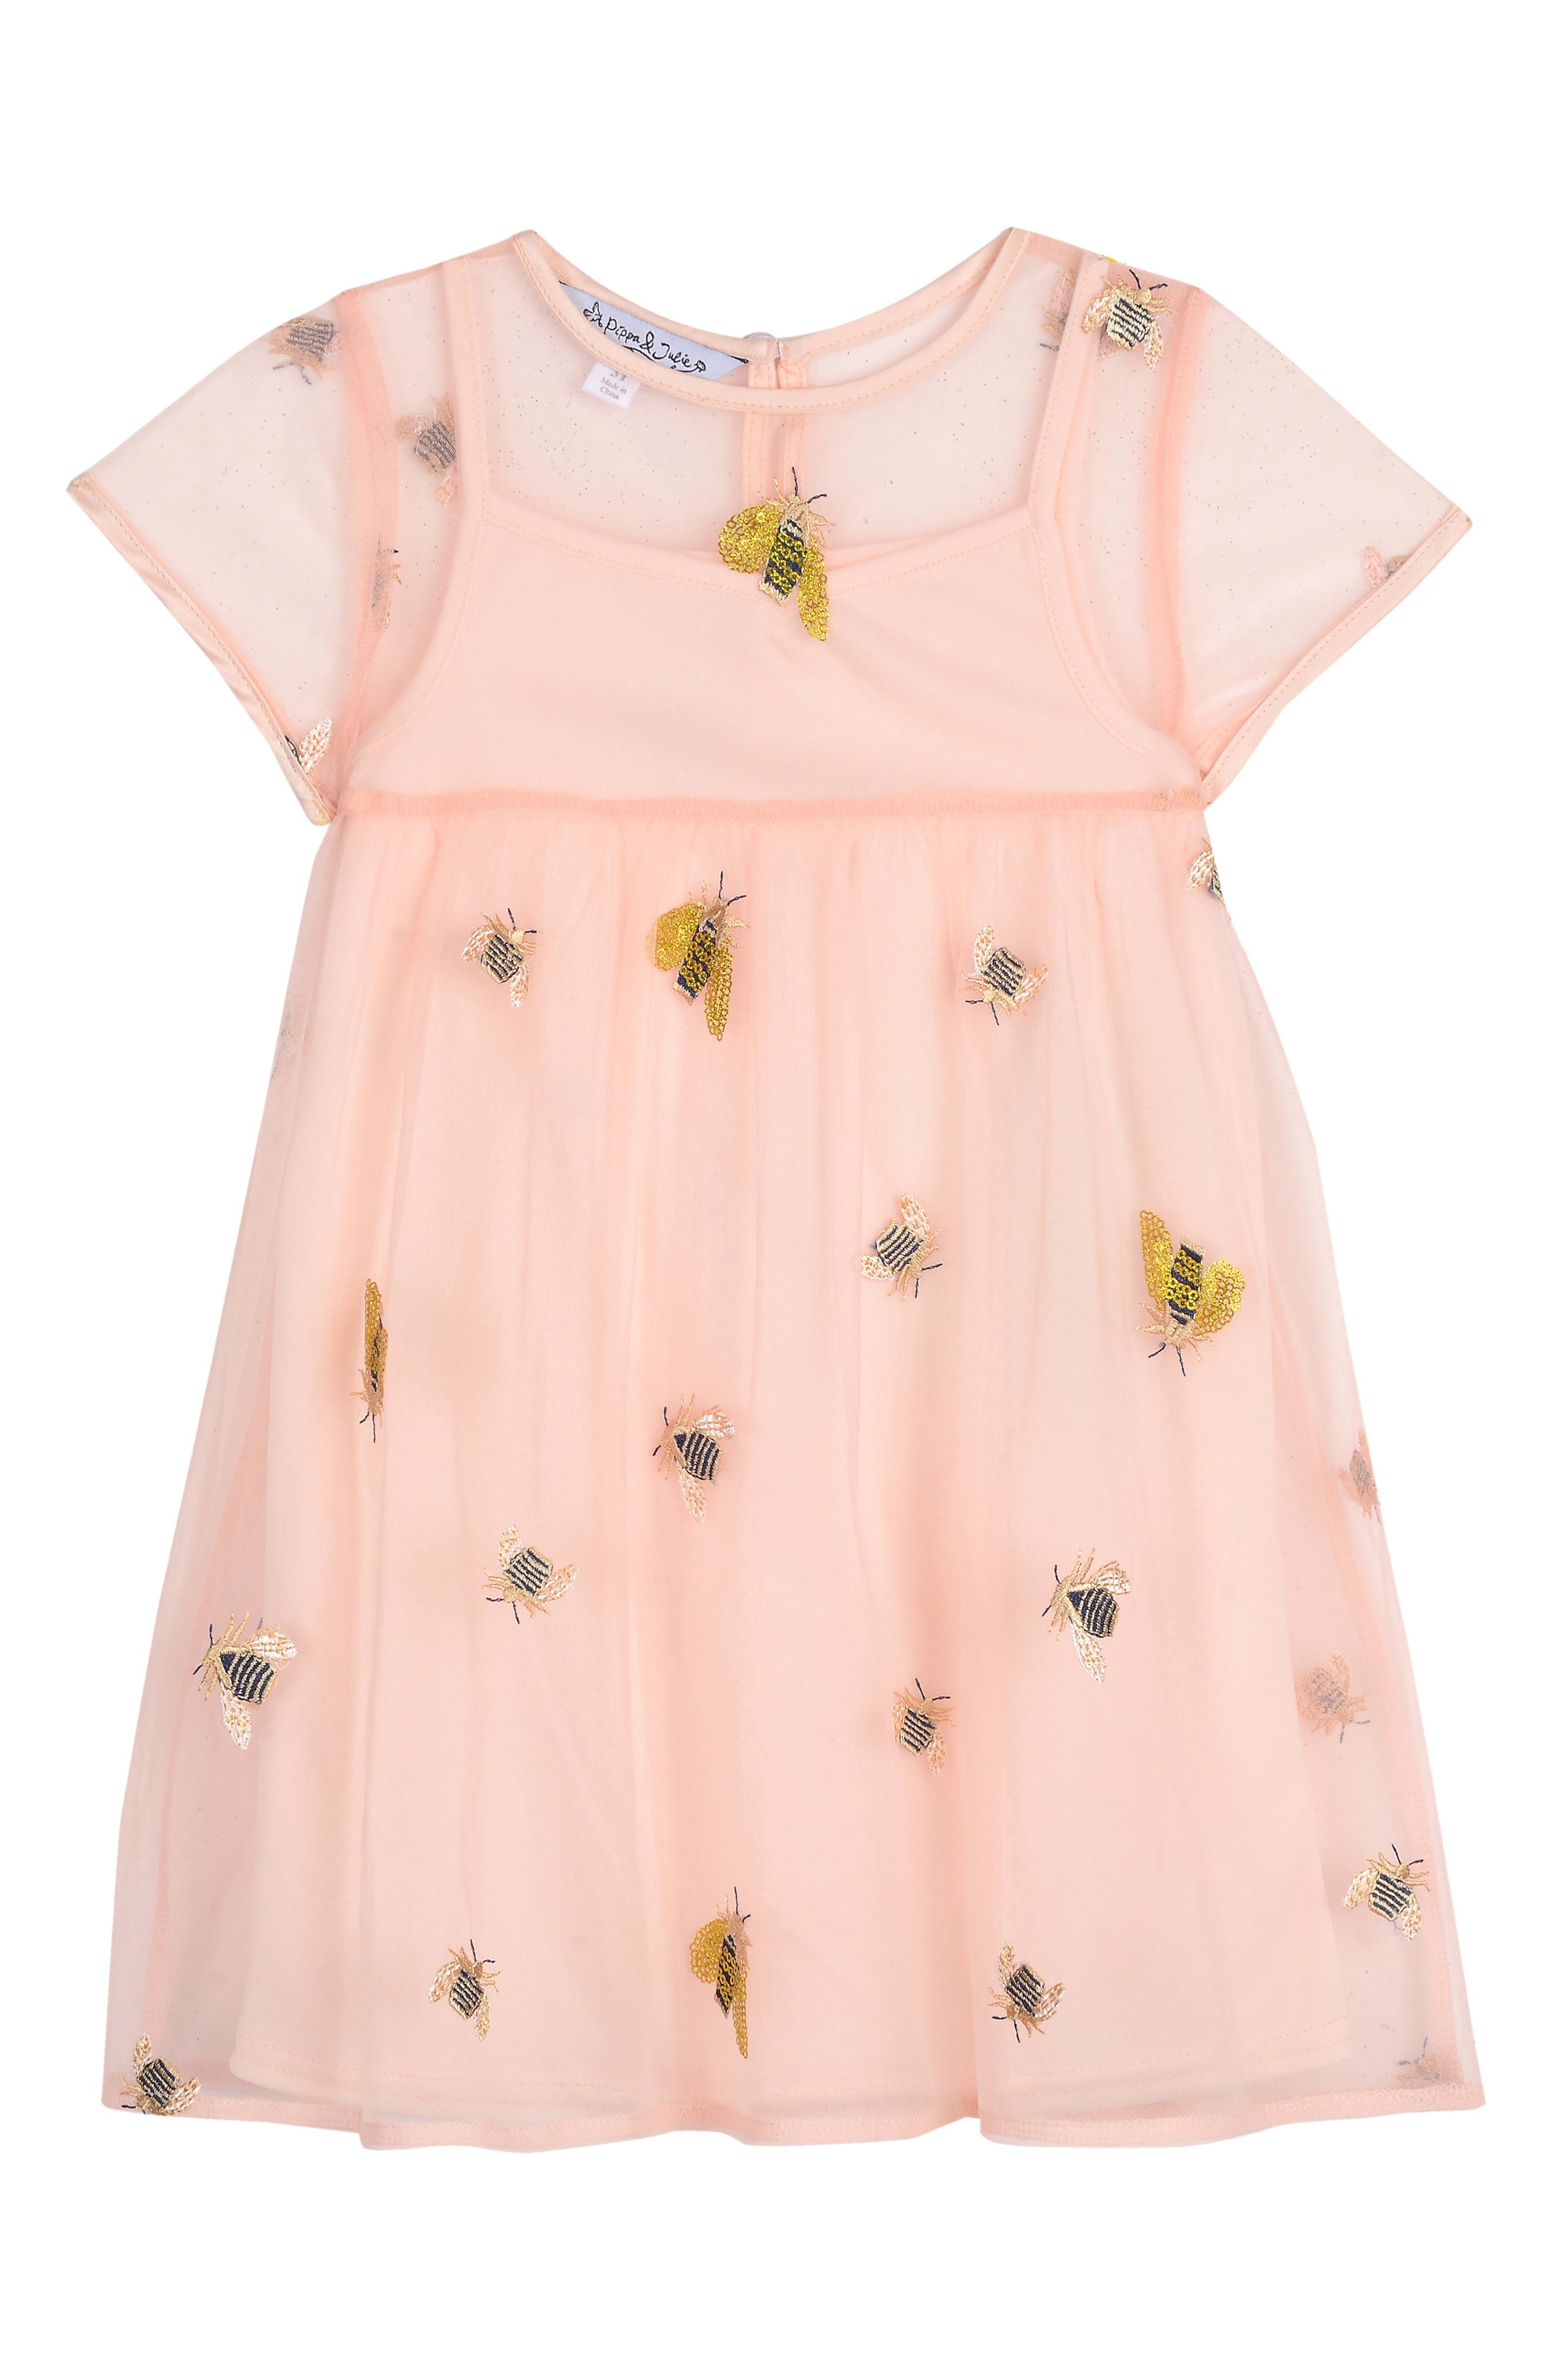 PIPPA & JULIE Embroidered Bee Dress, Main, color, PINK UNDERLAY